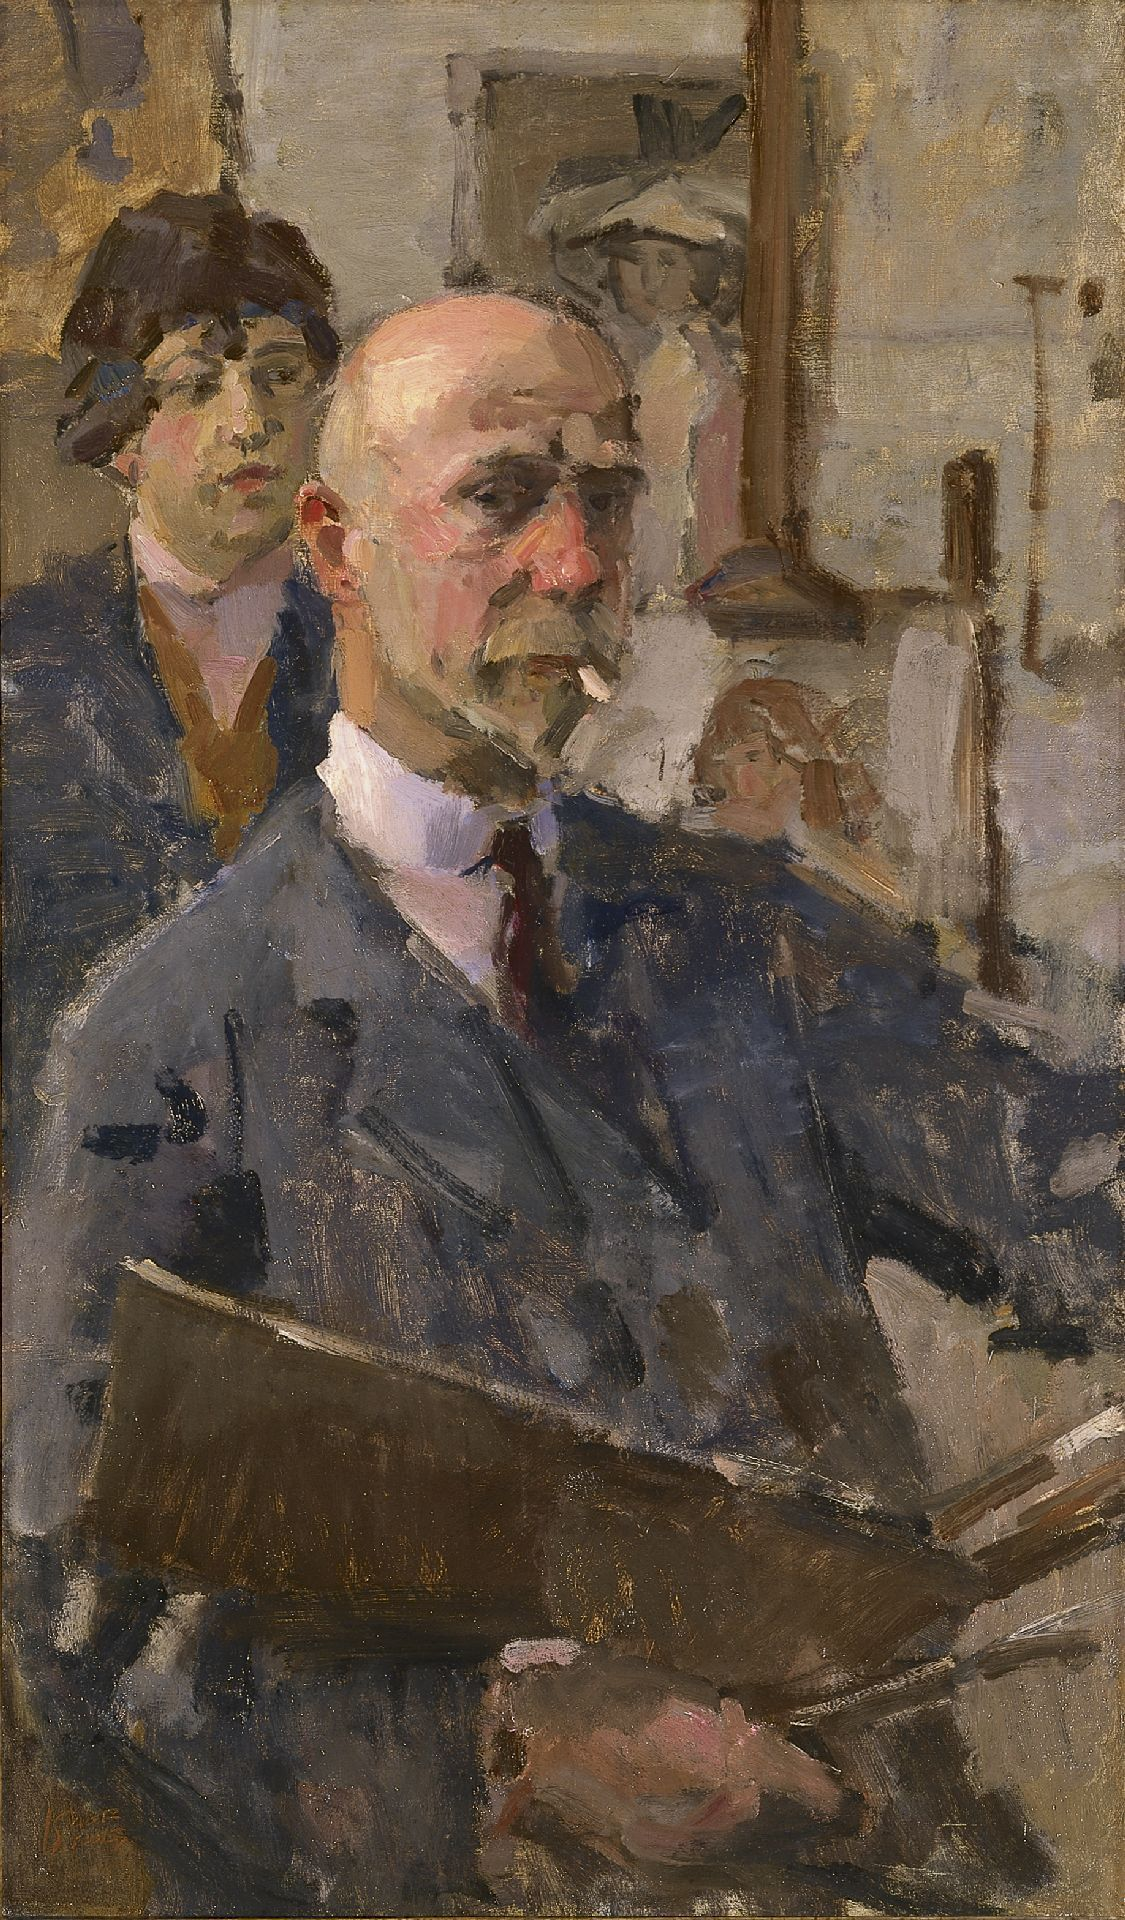 Portrait of artist, painter, watercolourist and draughtsman 'Isaac' Lazarus Israels